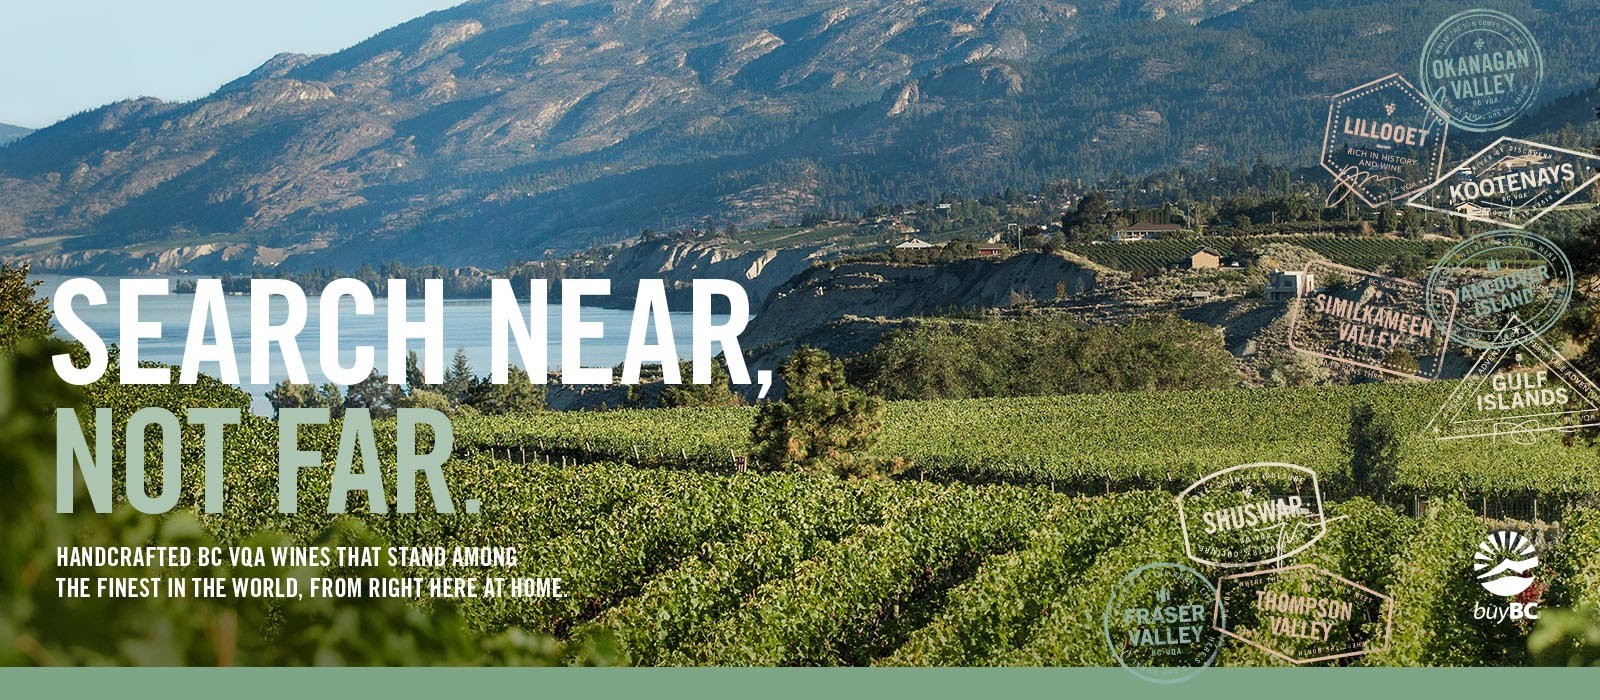 """WINES OF BRITISH COLUMBIA LAUNCH """"SEARCH NEAR NOT FAR"""" & """"LOOK WHO'S POURING MORE BC"""" CAMPAIGN. July 29, 2019"""